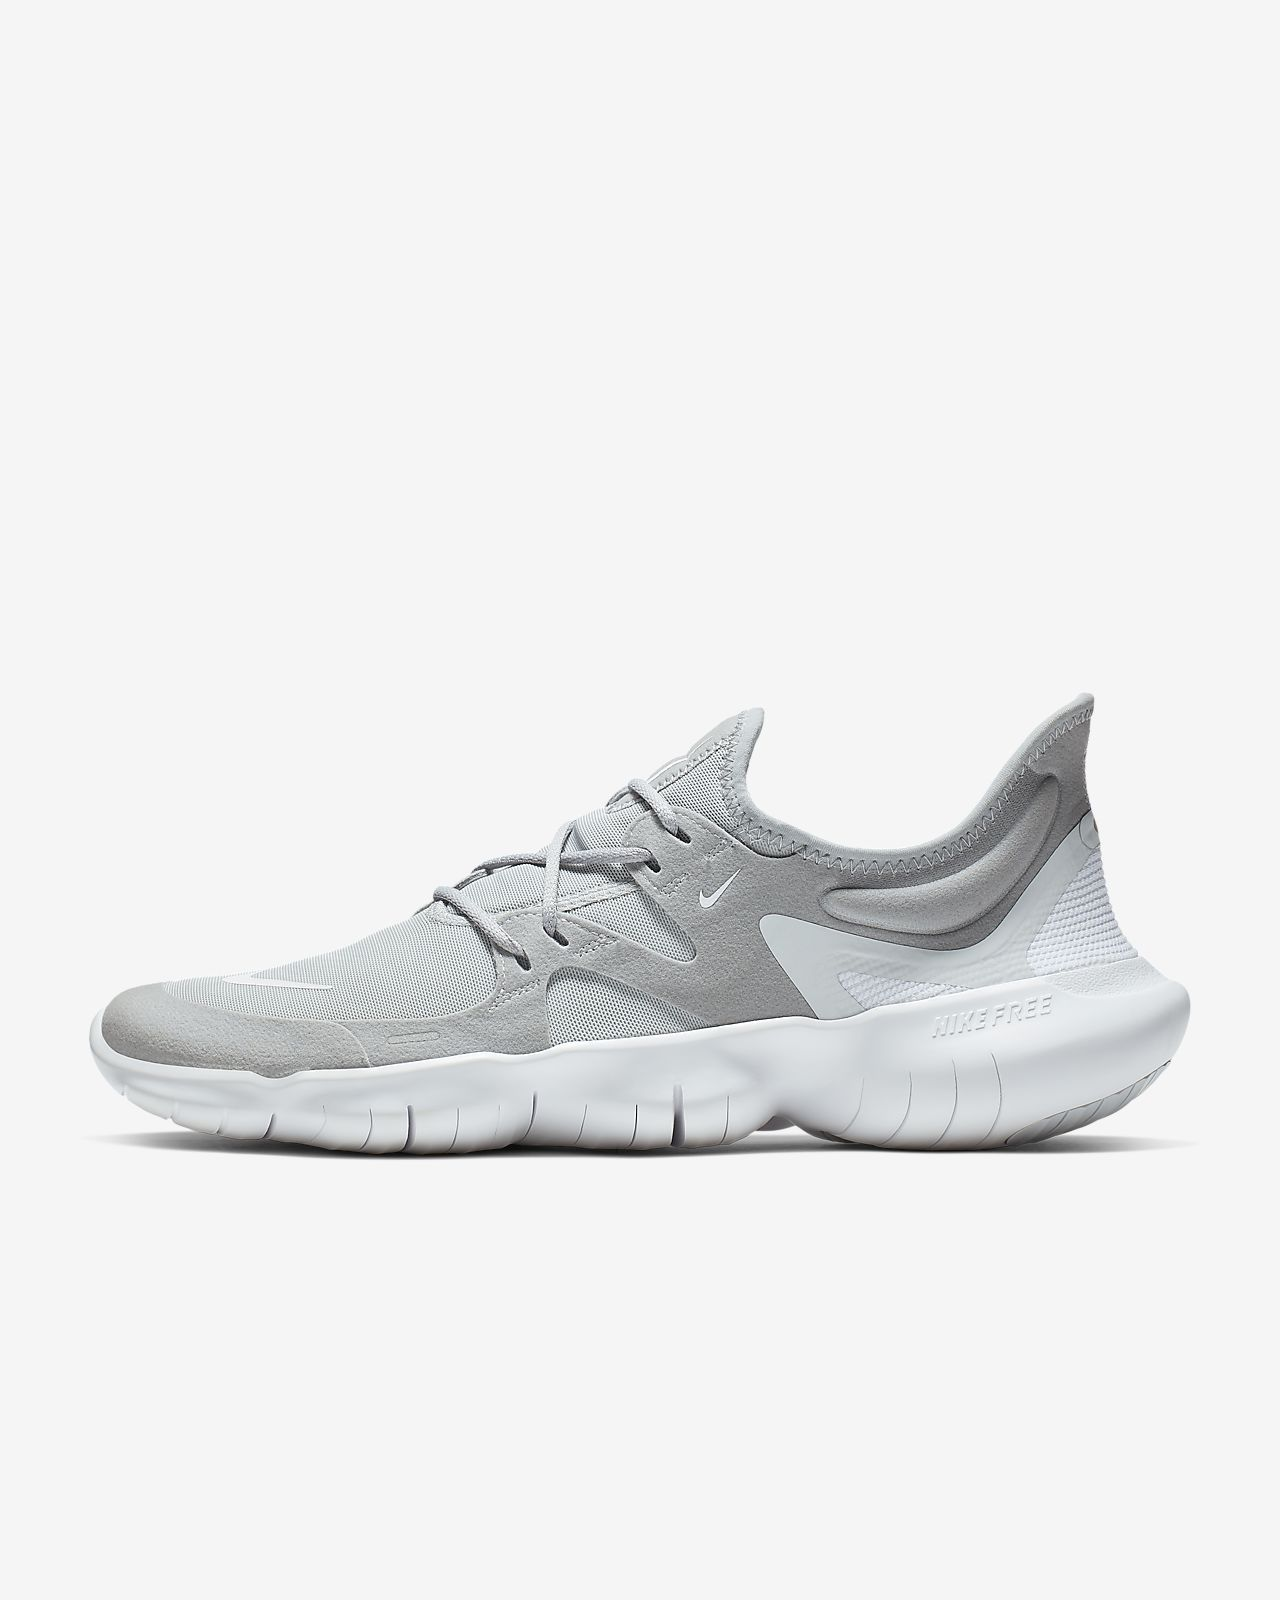 the best attitude 75955 7a995 Chaussure de running Nike Free RN 5.0 pour Homme